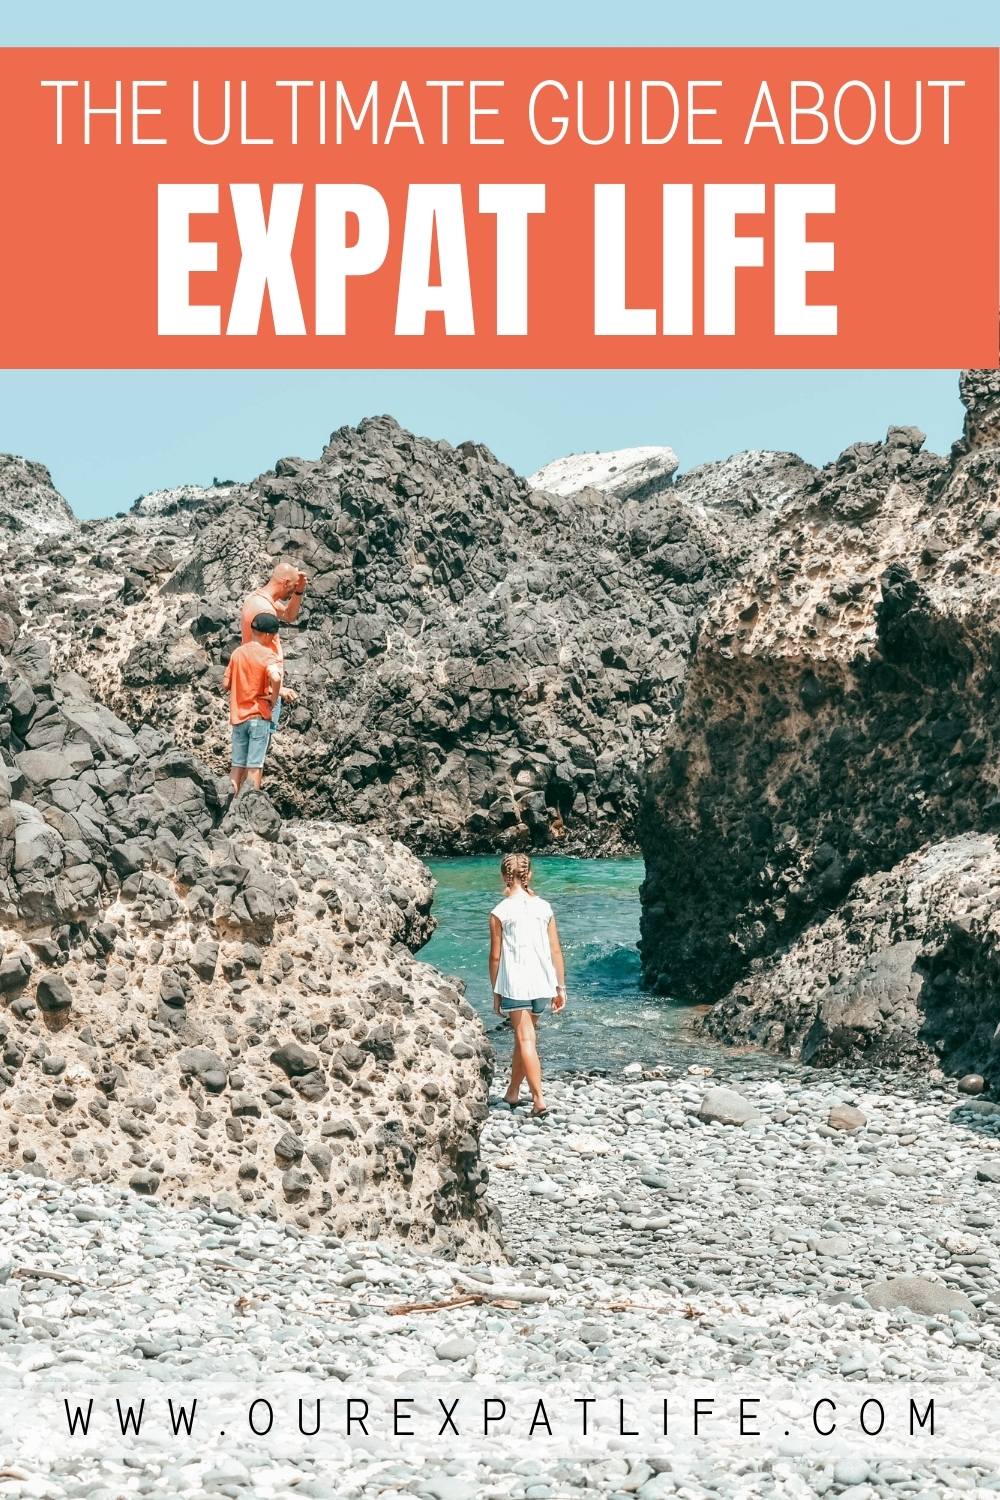 Ultimate guide about expat life